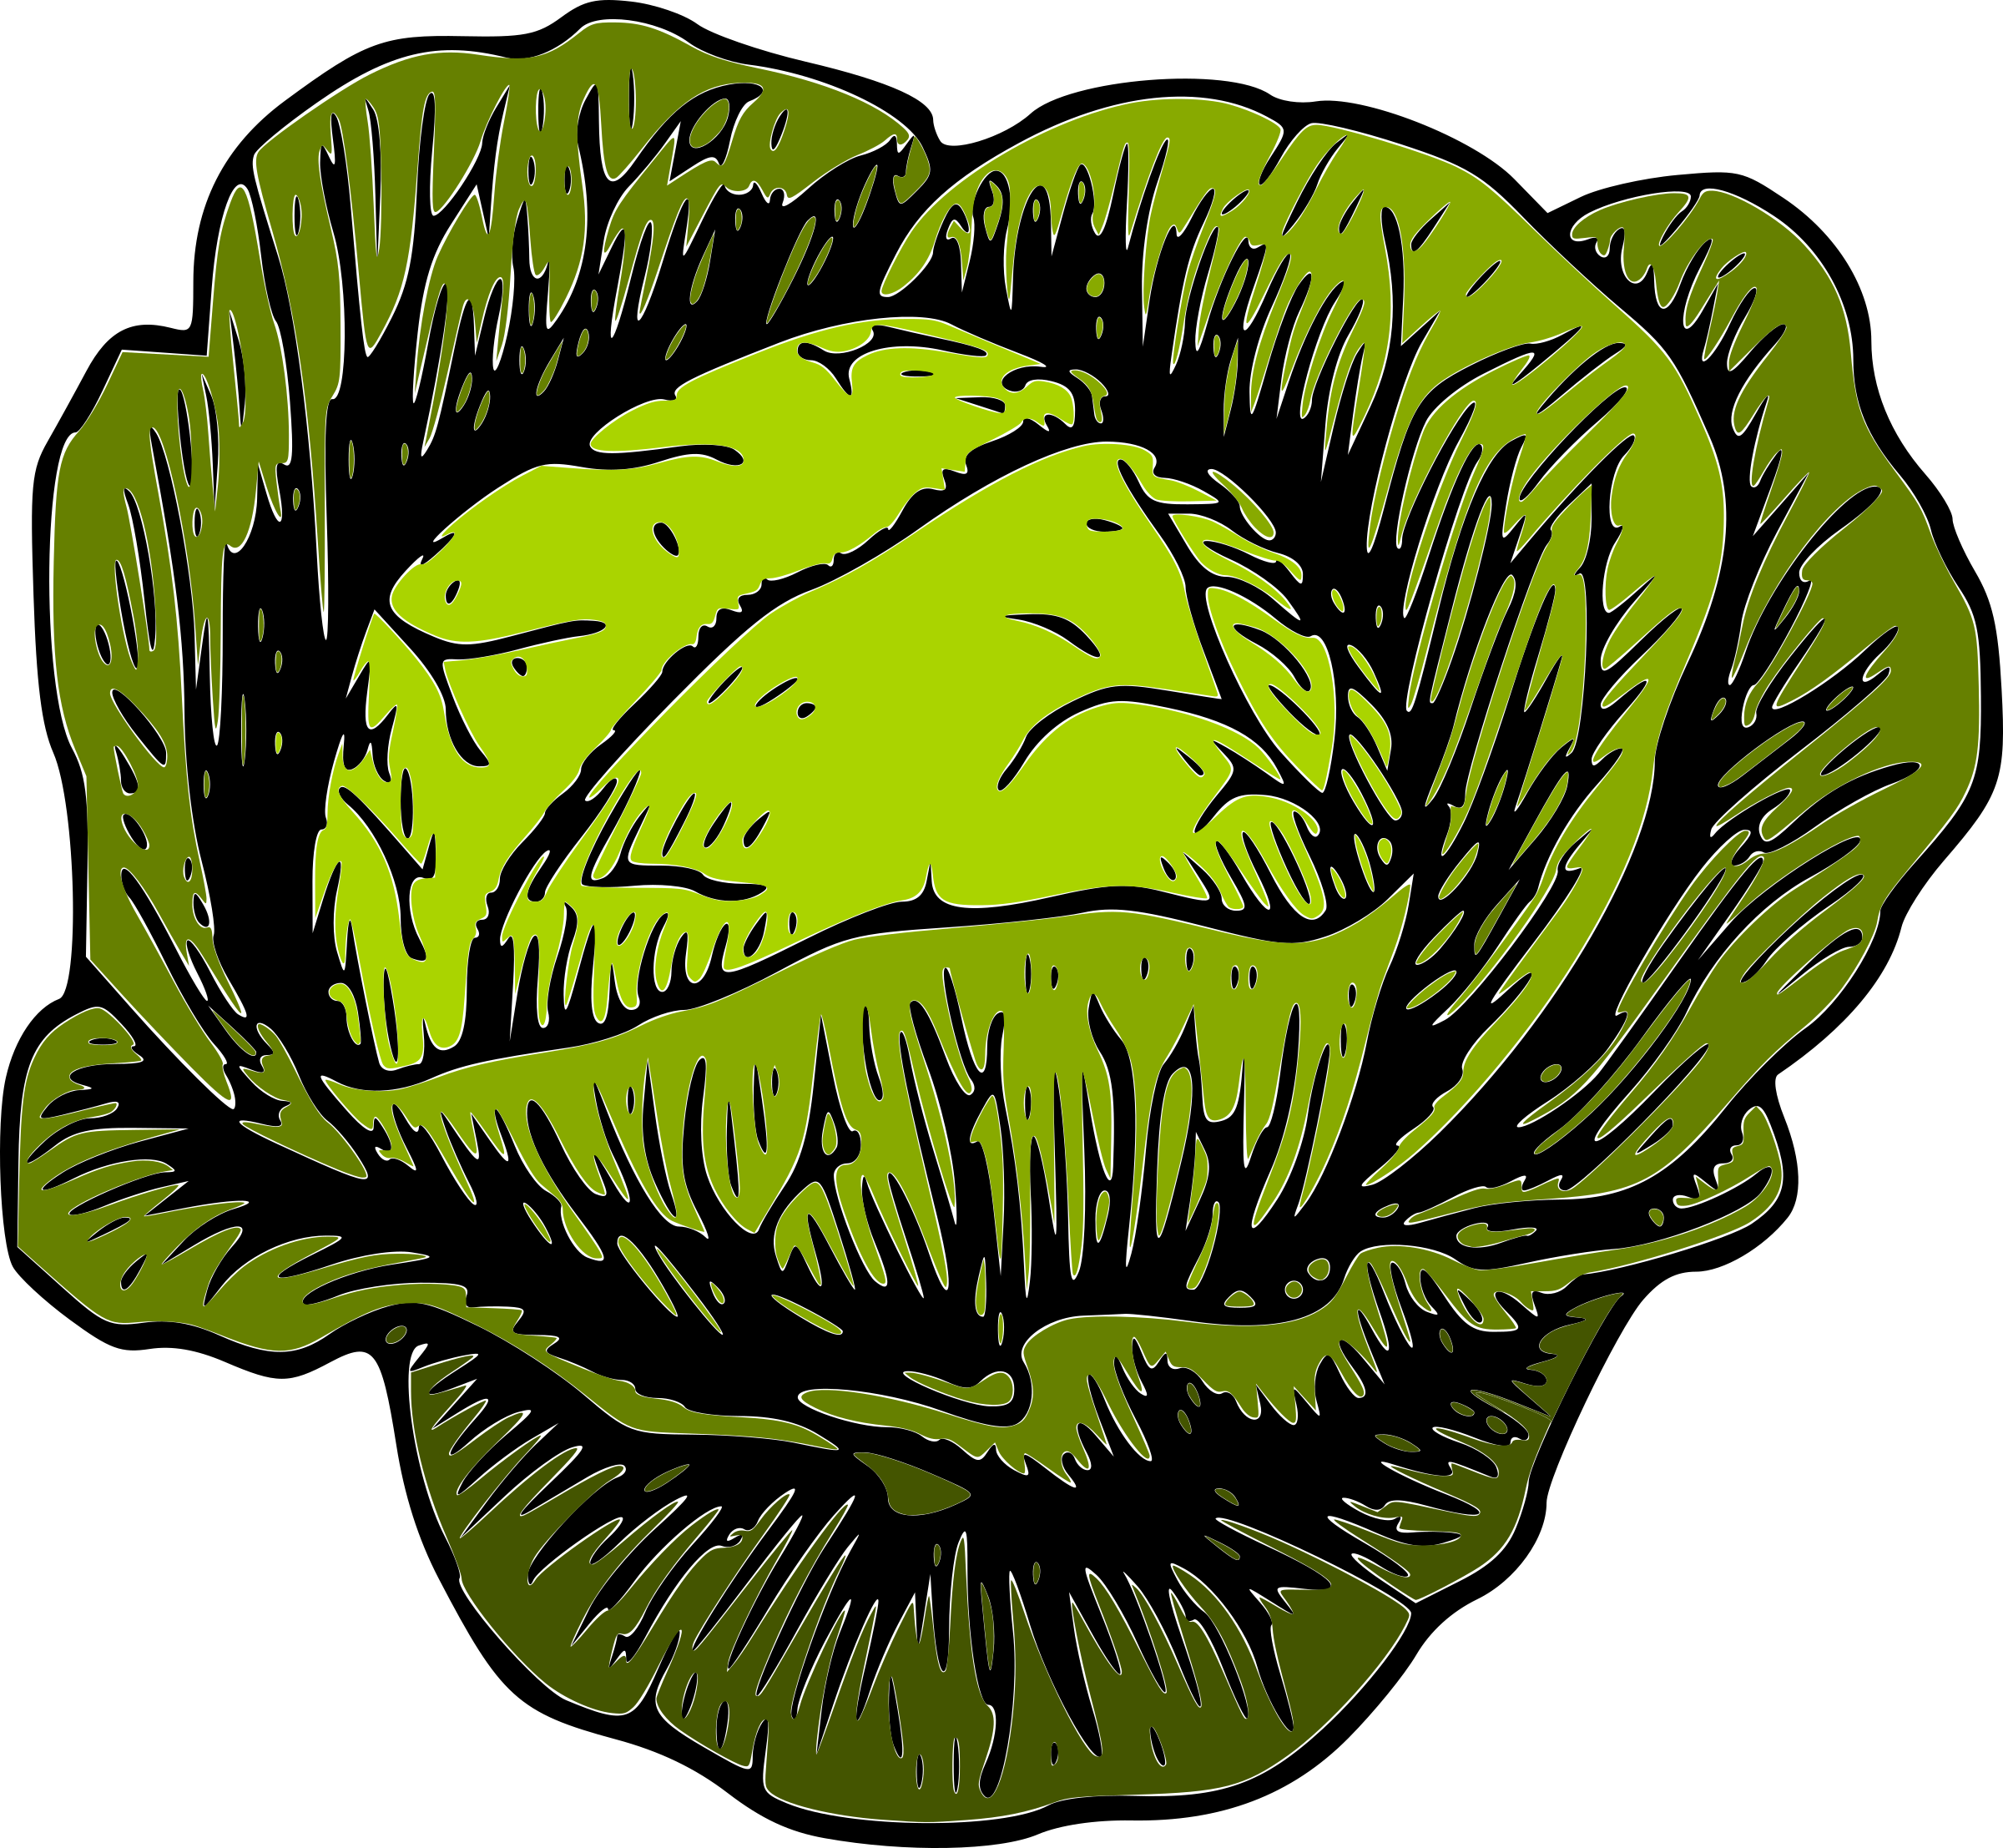 Cabbage clipart cabage. Green big image png